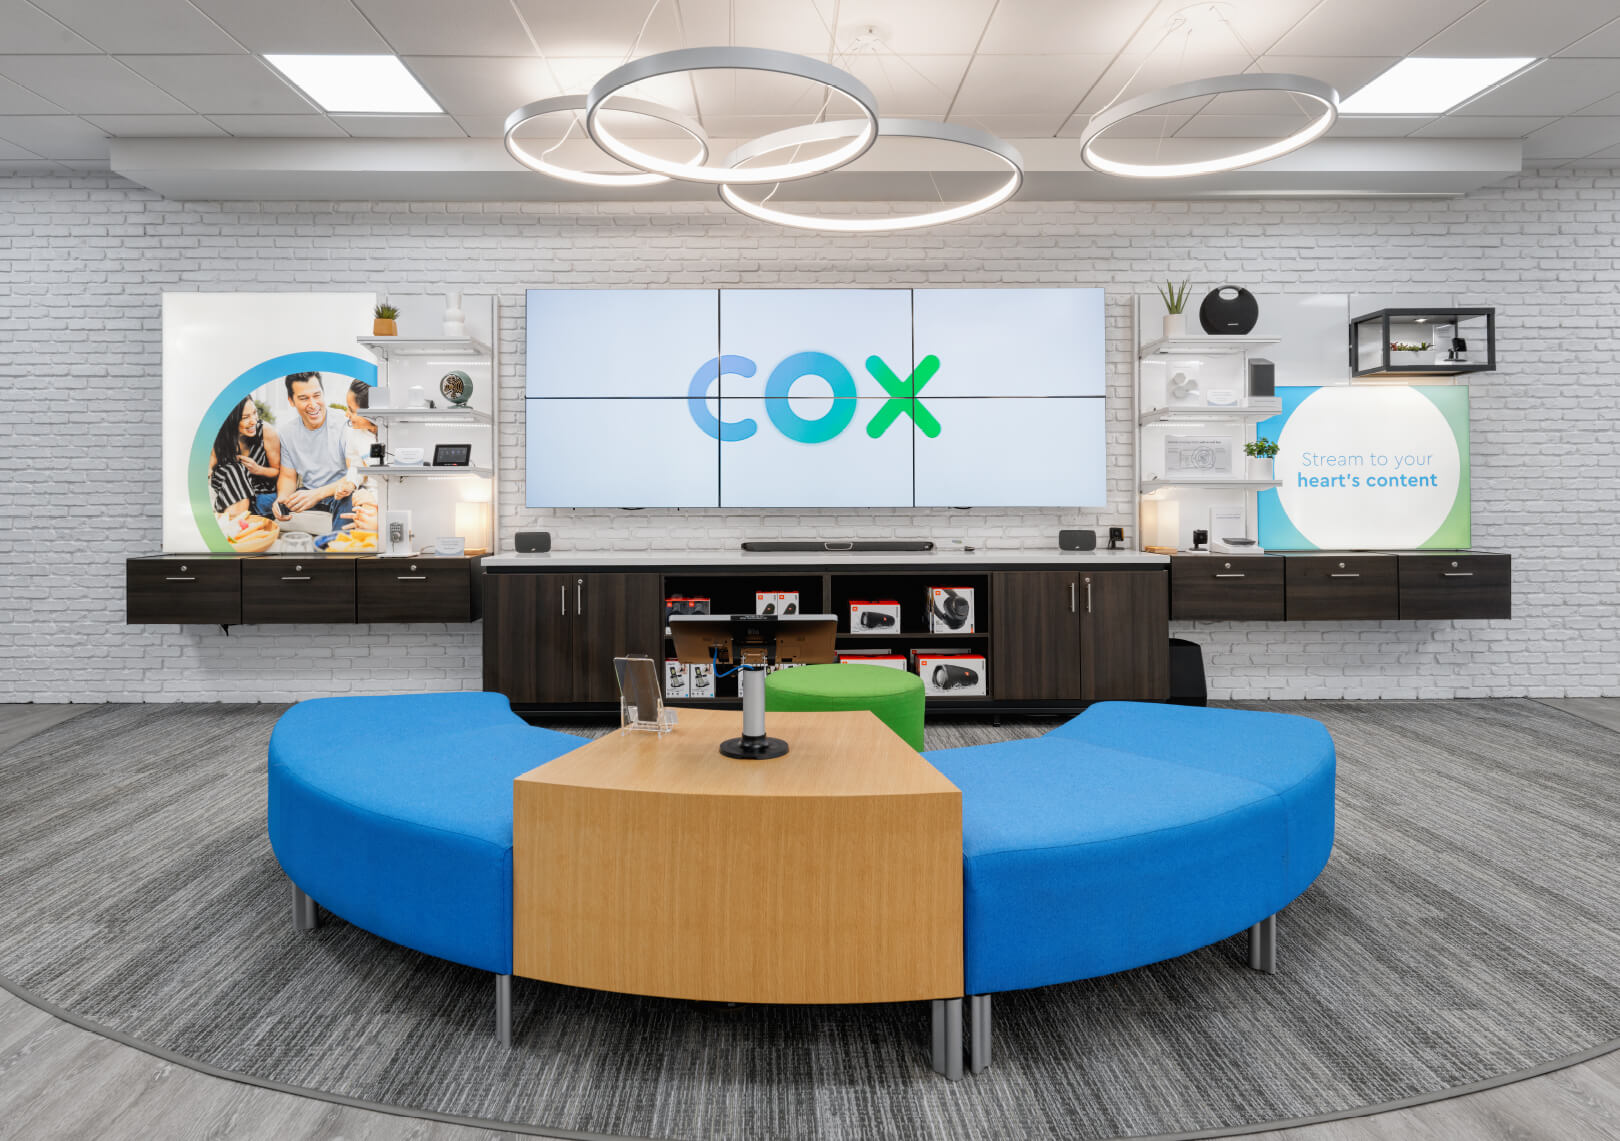 Cox Communications seating area with video wall